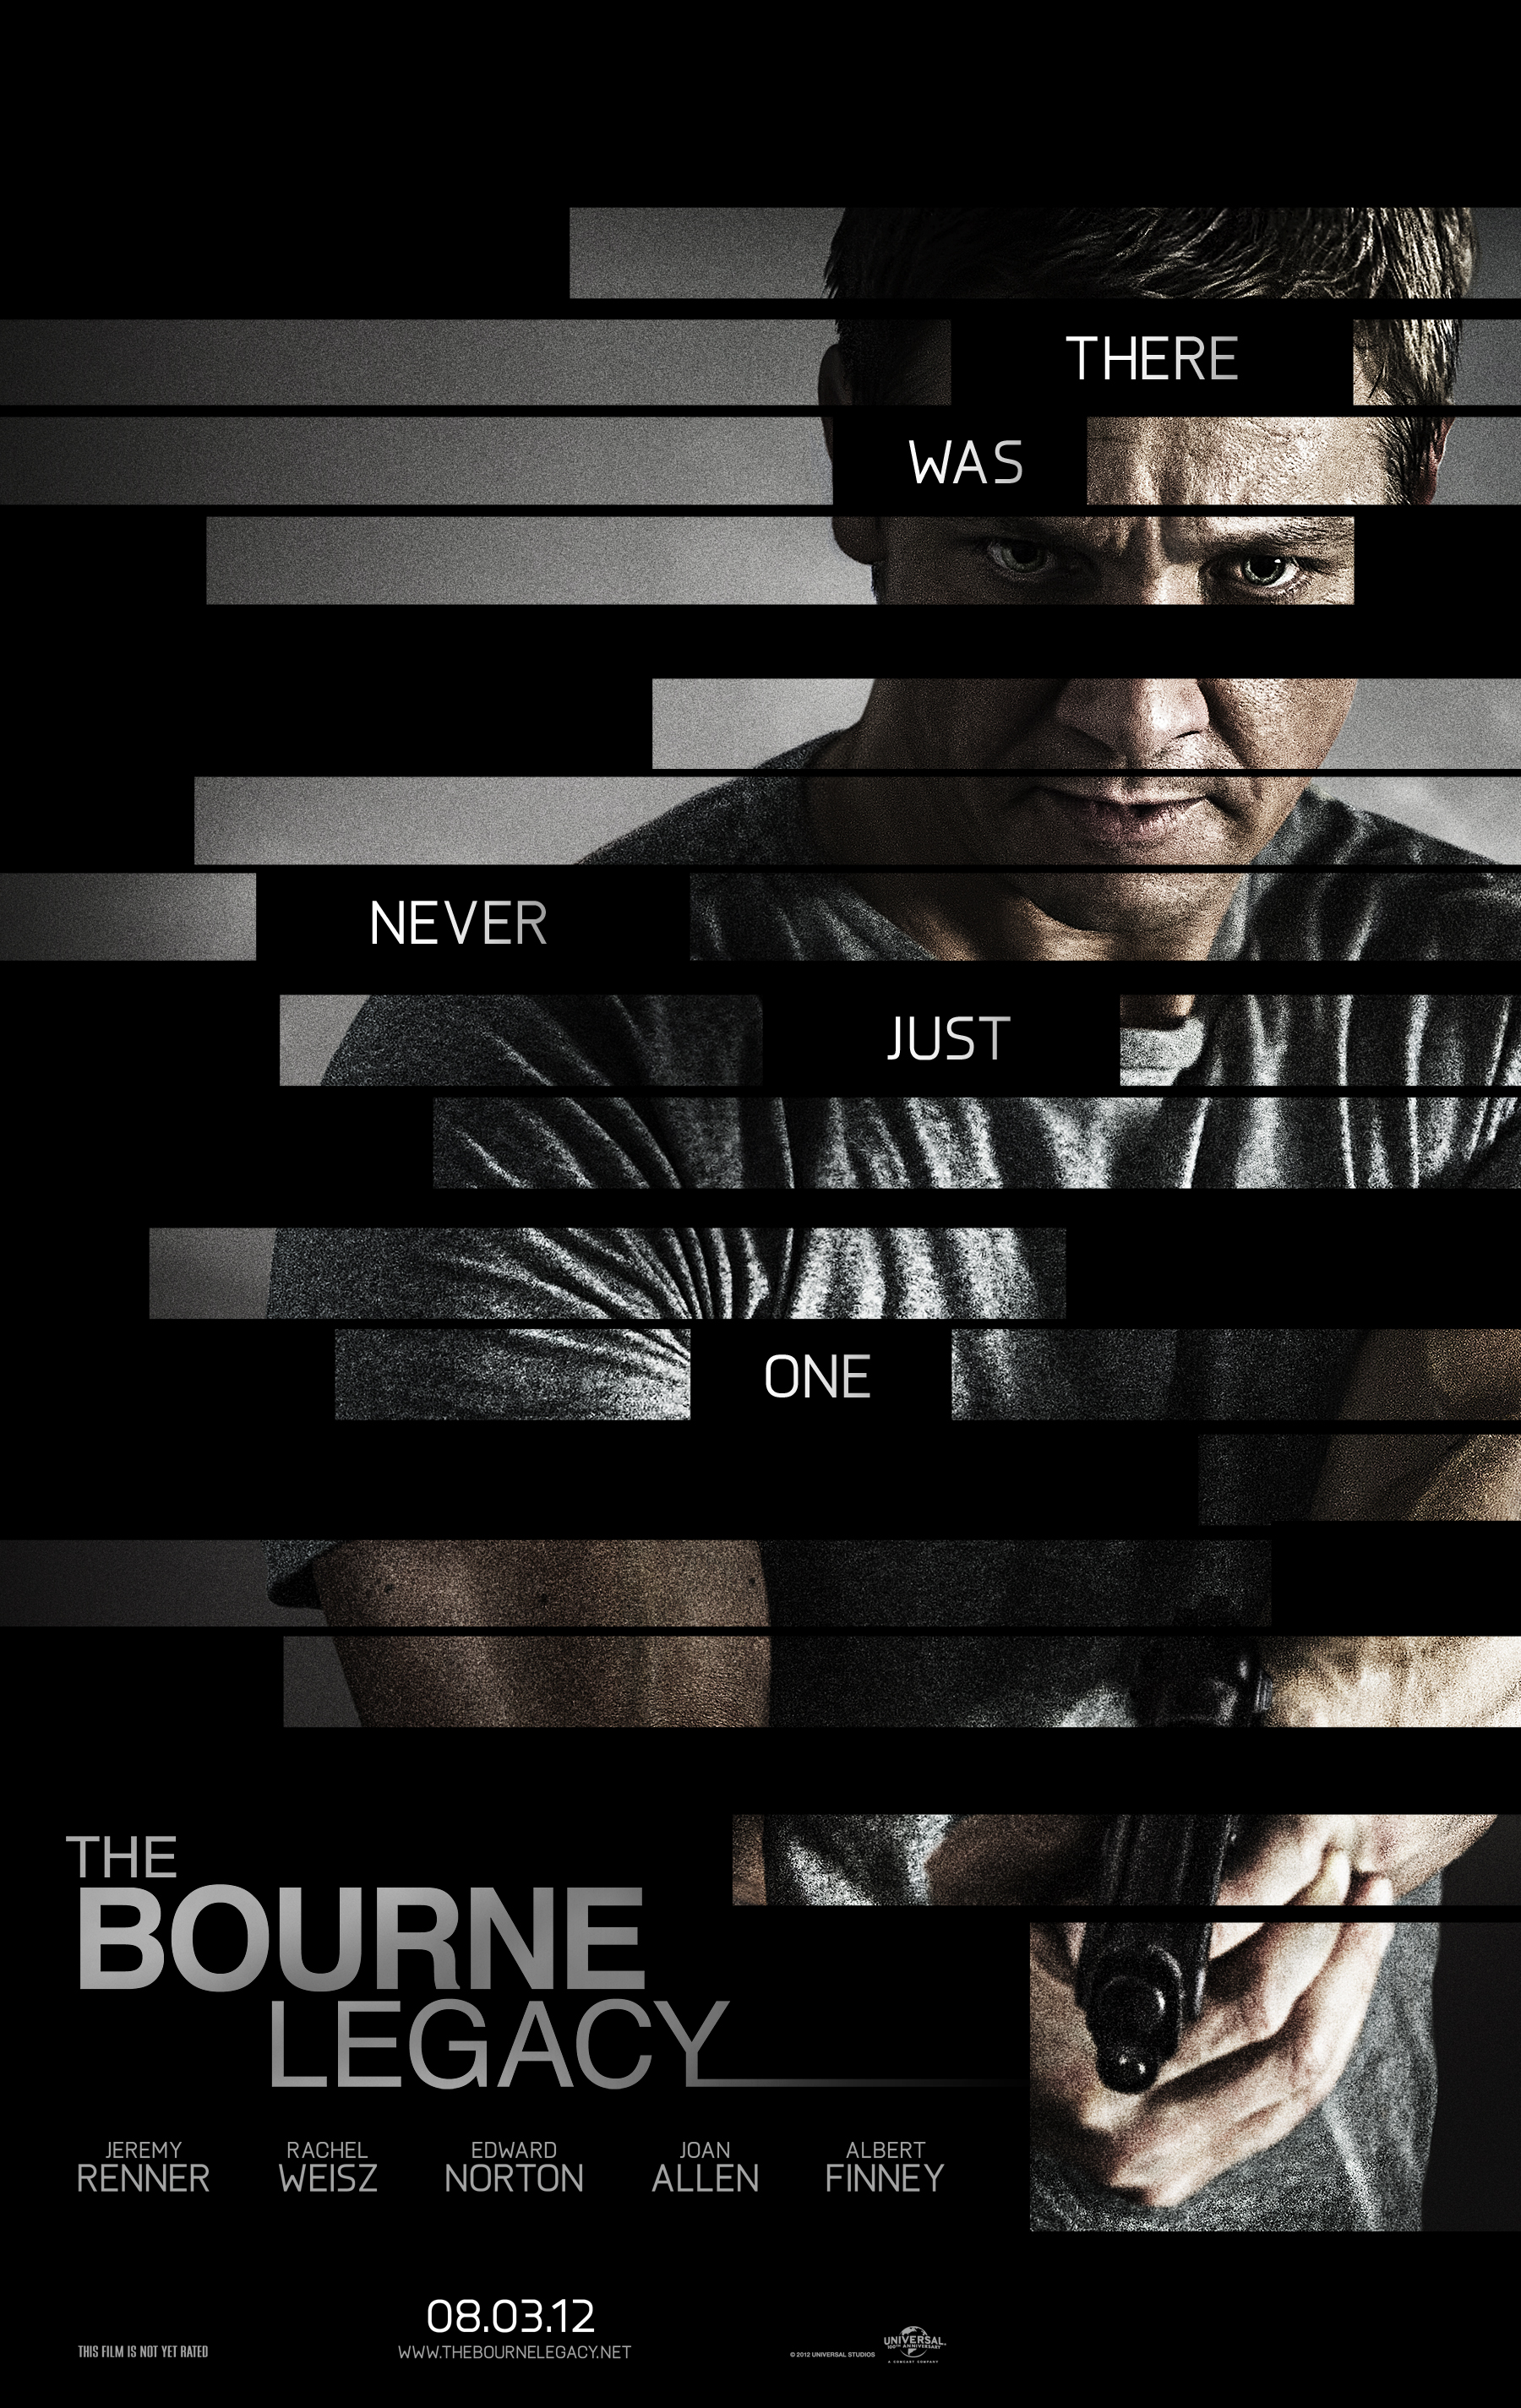 bourne legacy movie poster MATT DAMON and JEREMY RENNER Might Team Up In New BOURNE MOVIE